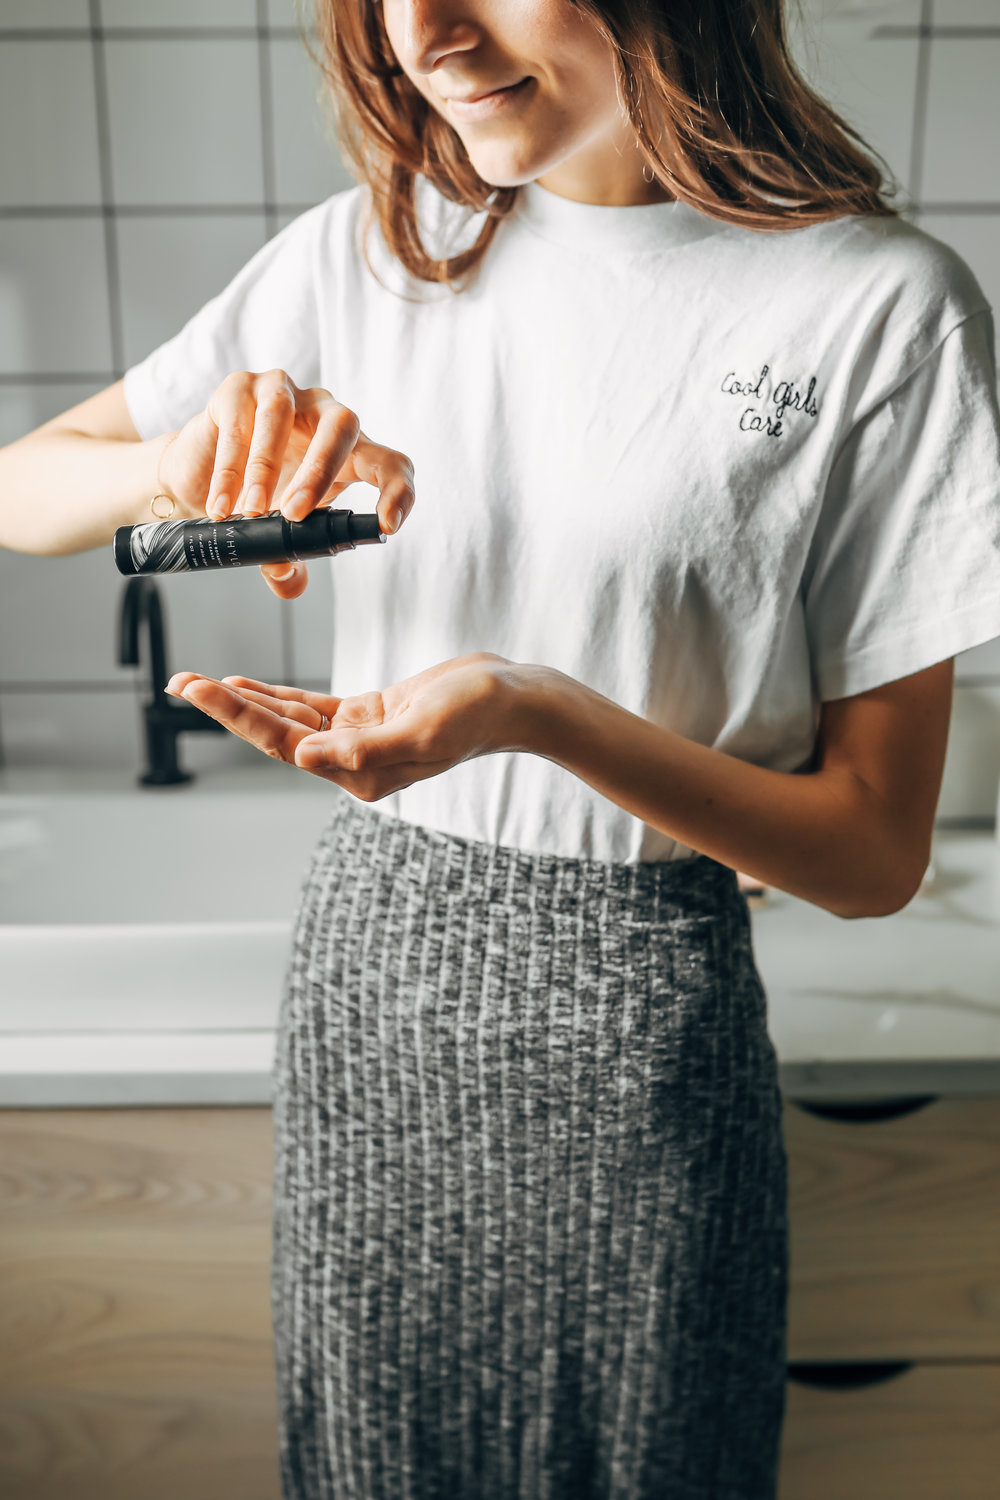 Nourish your body with healthy foods and exfoliate every day to help your skin glow. It is uncommon not to just go to the drug store and pick up medications, but try these five uncommon methods for glowy skin and see the results!